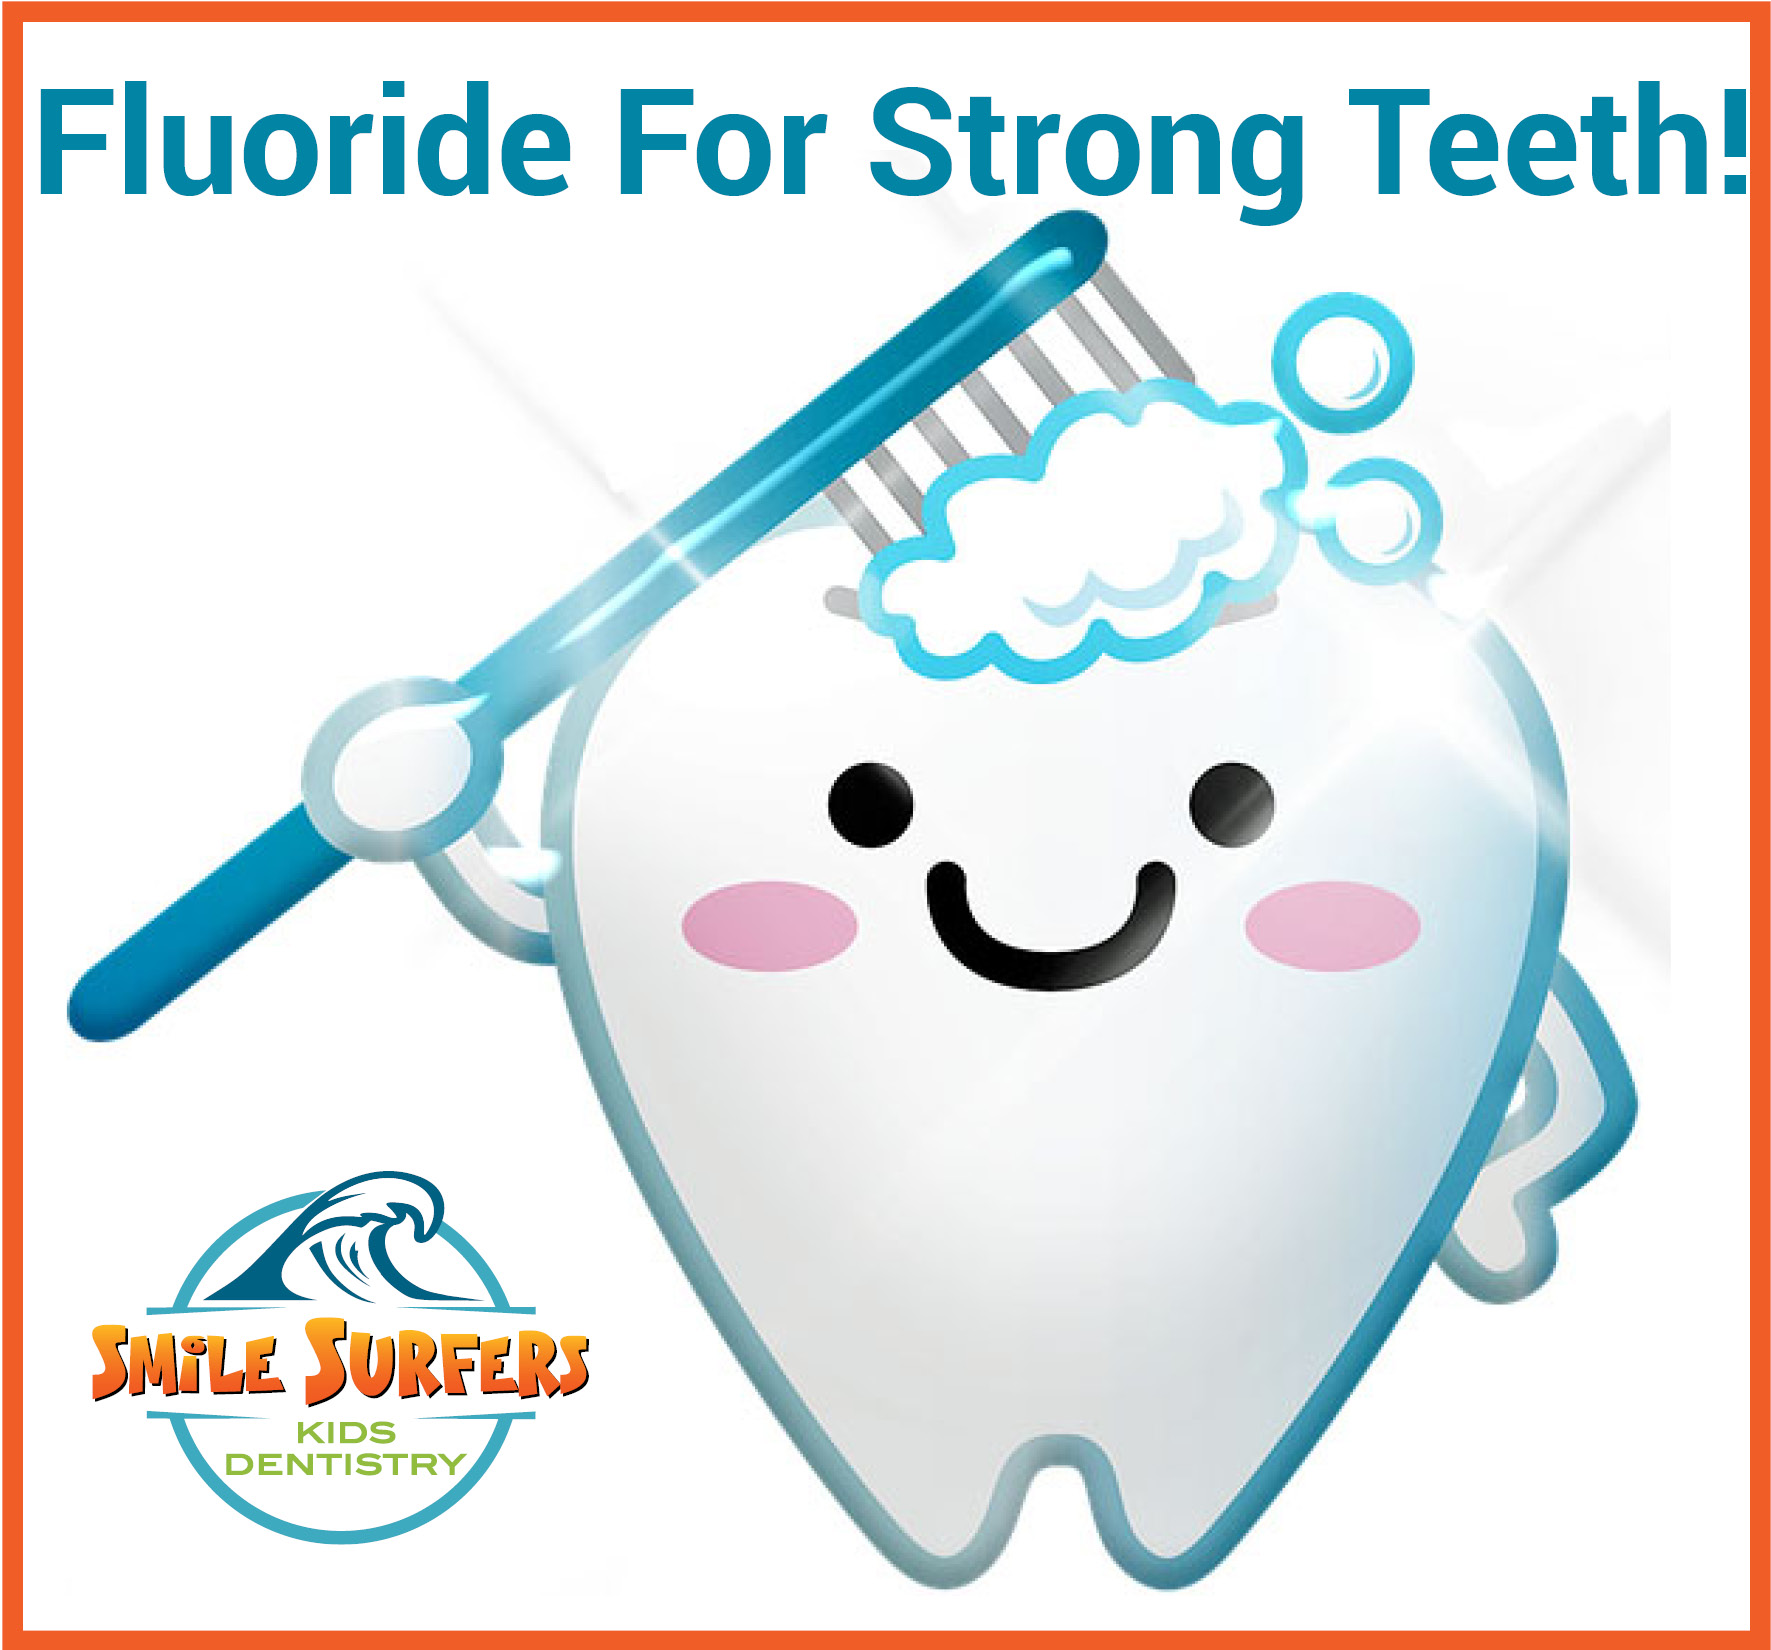 Use Fluoride for Strong Teeth!